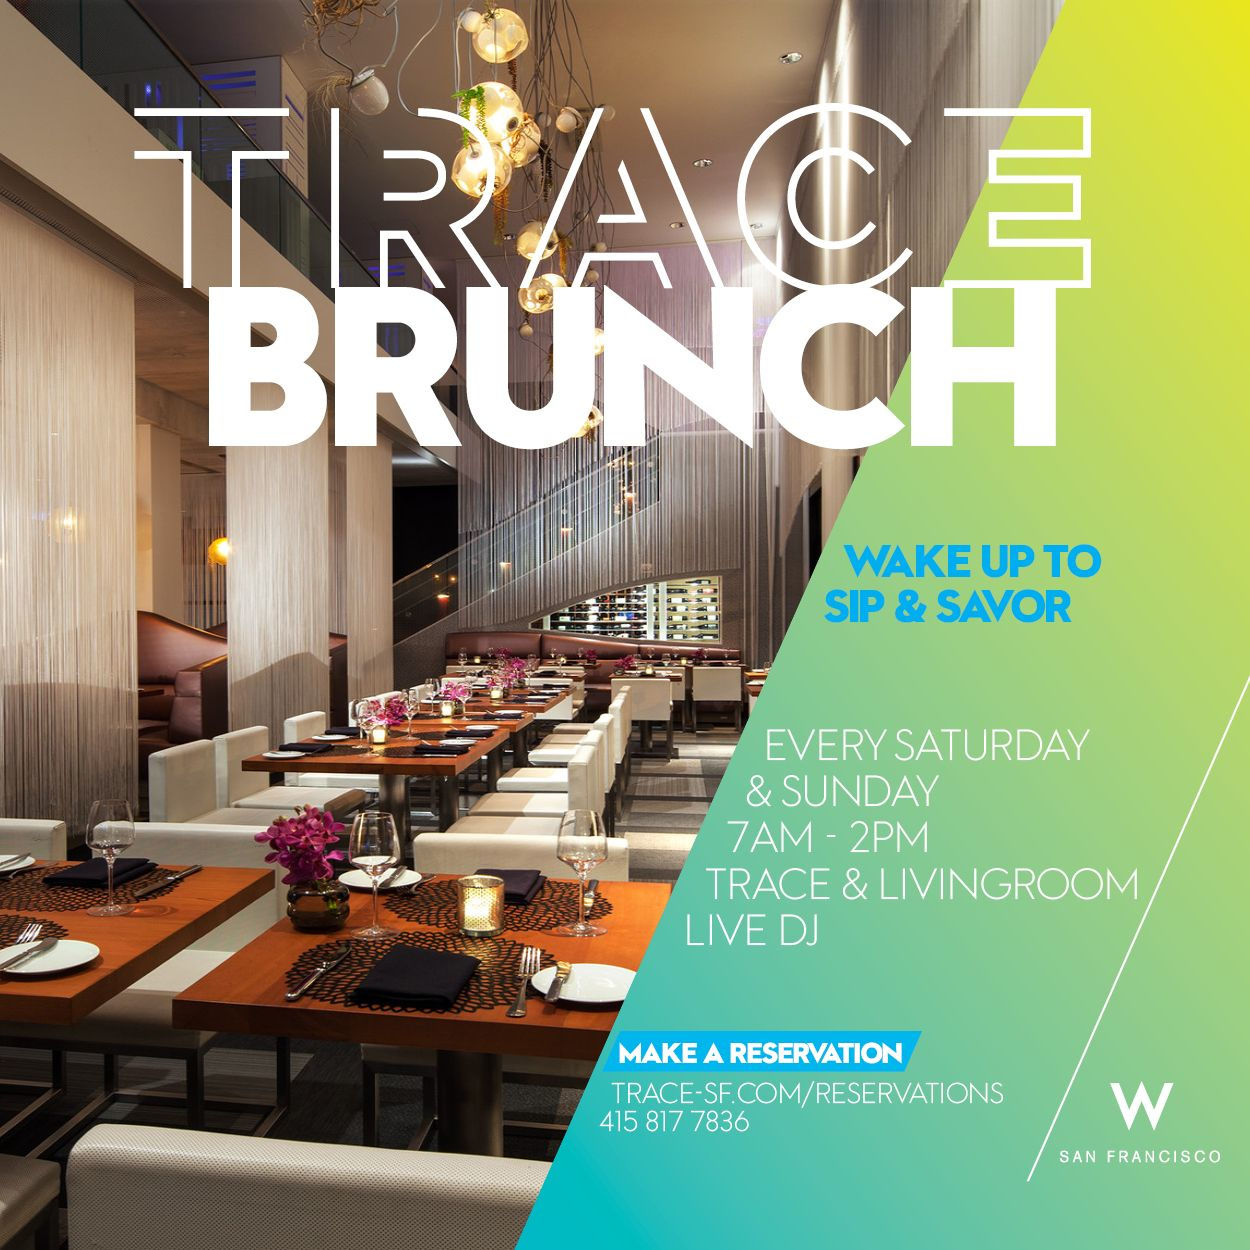 Best Brunches in San Francisco - TRACE San Francisco restaurant